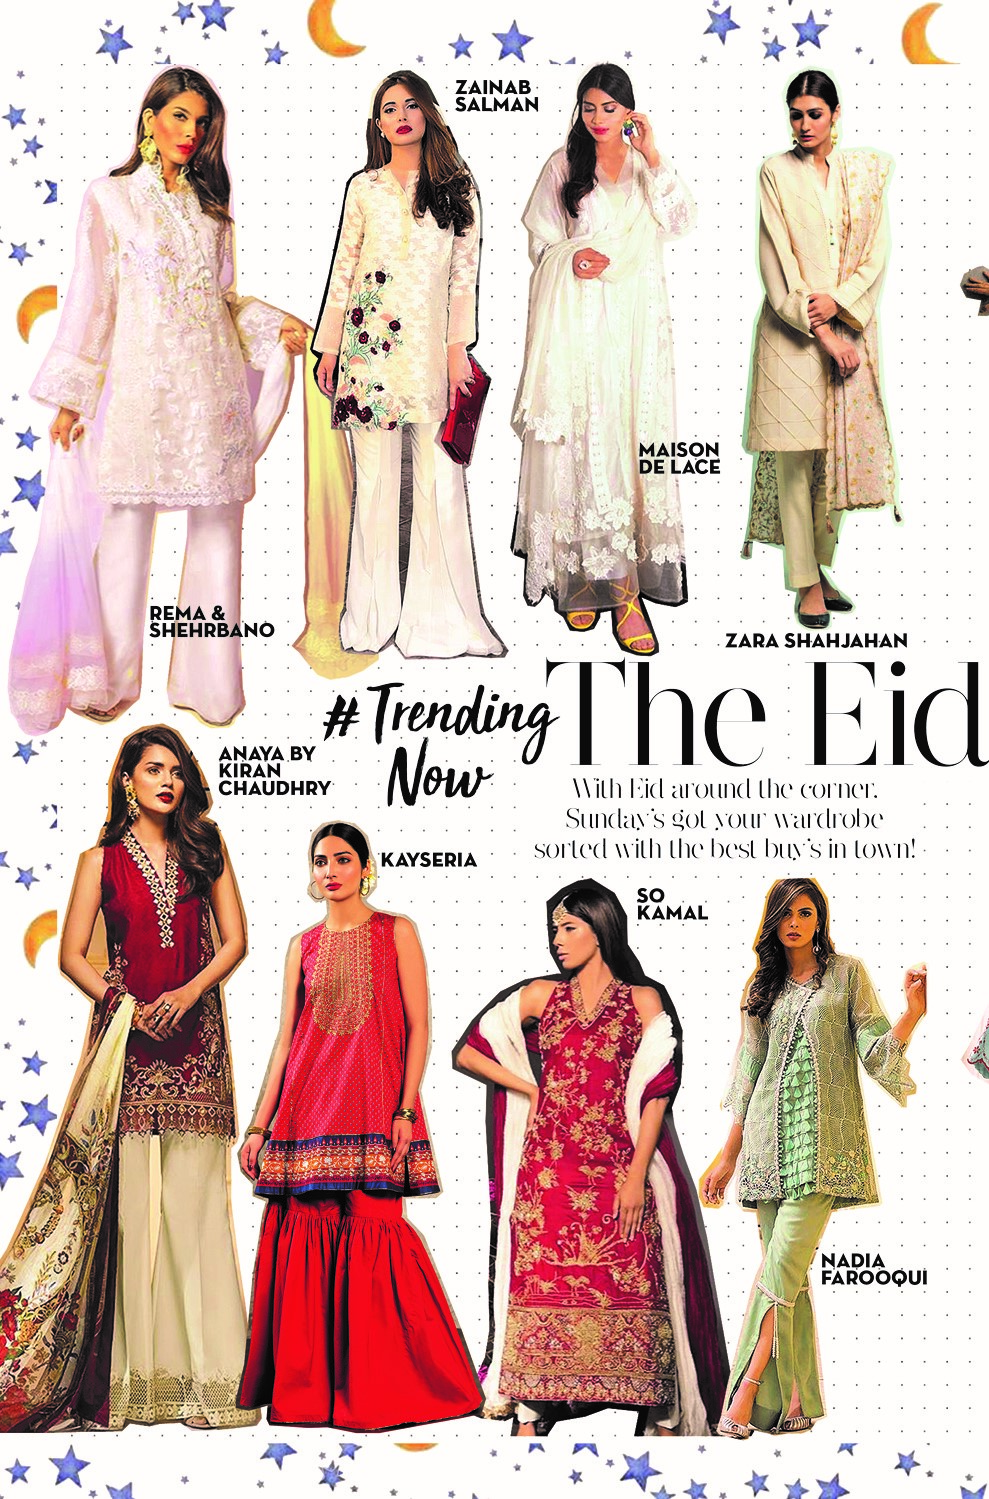 TrendingNow The Eid factor June 10-844 copy - Copy (2)